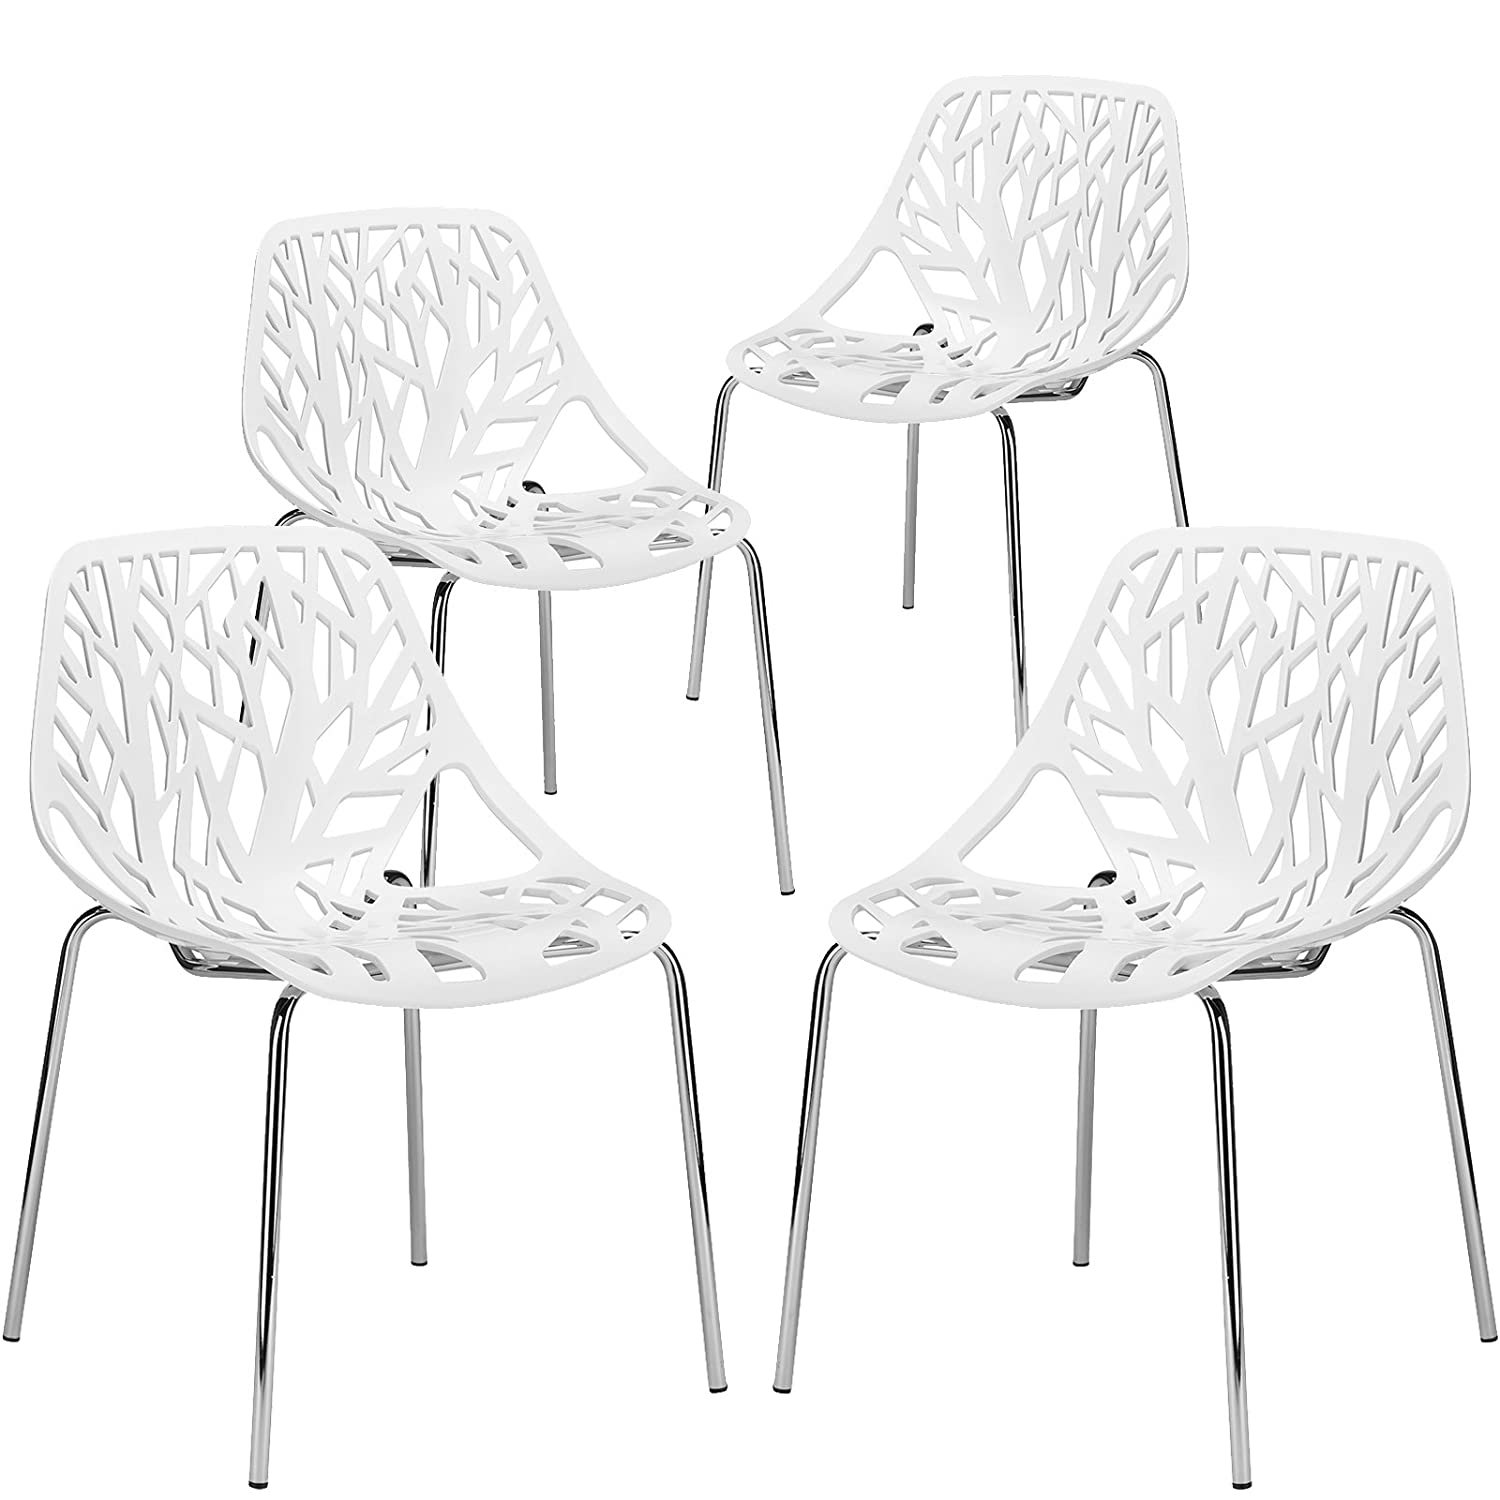 White POLY & BARK Poly and Bark Birds Nest Dining Side Chair in Black (Set of 4)